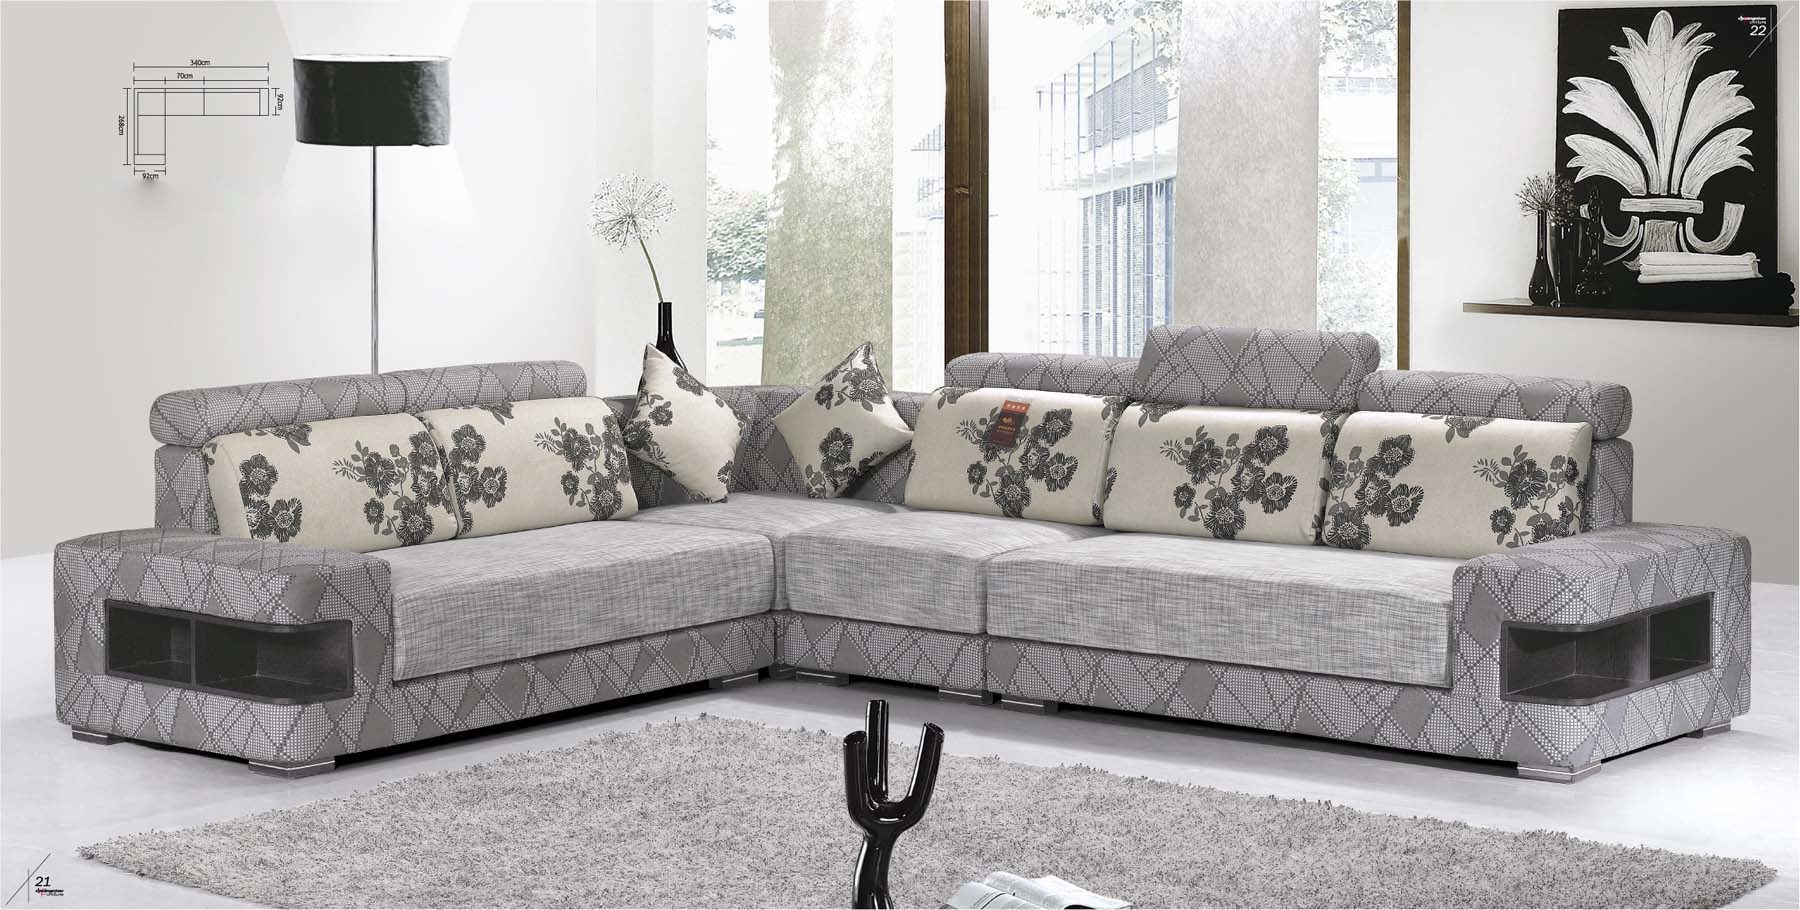 Sofa modern grau  Sofa In L Form. l form sofa design and decorate your room in 3d ...